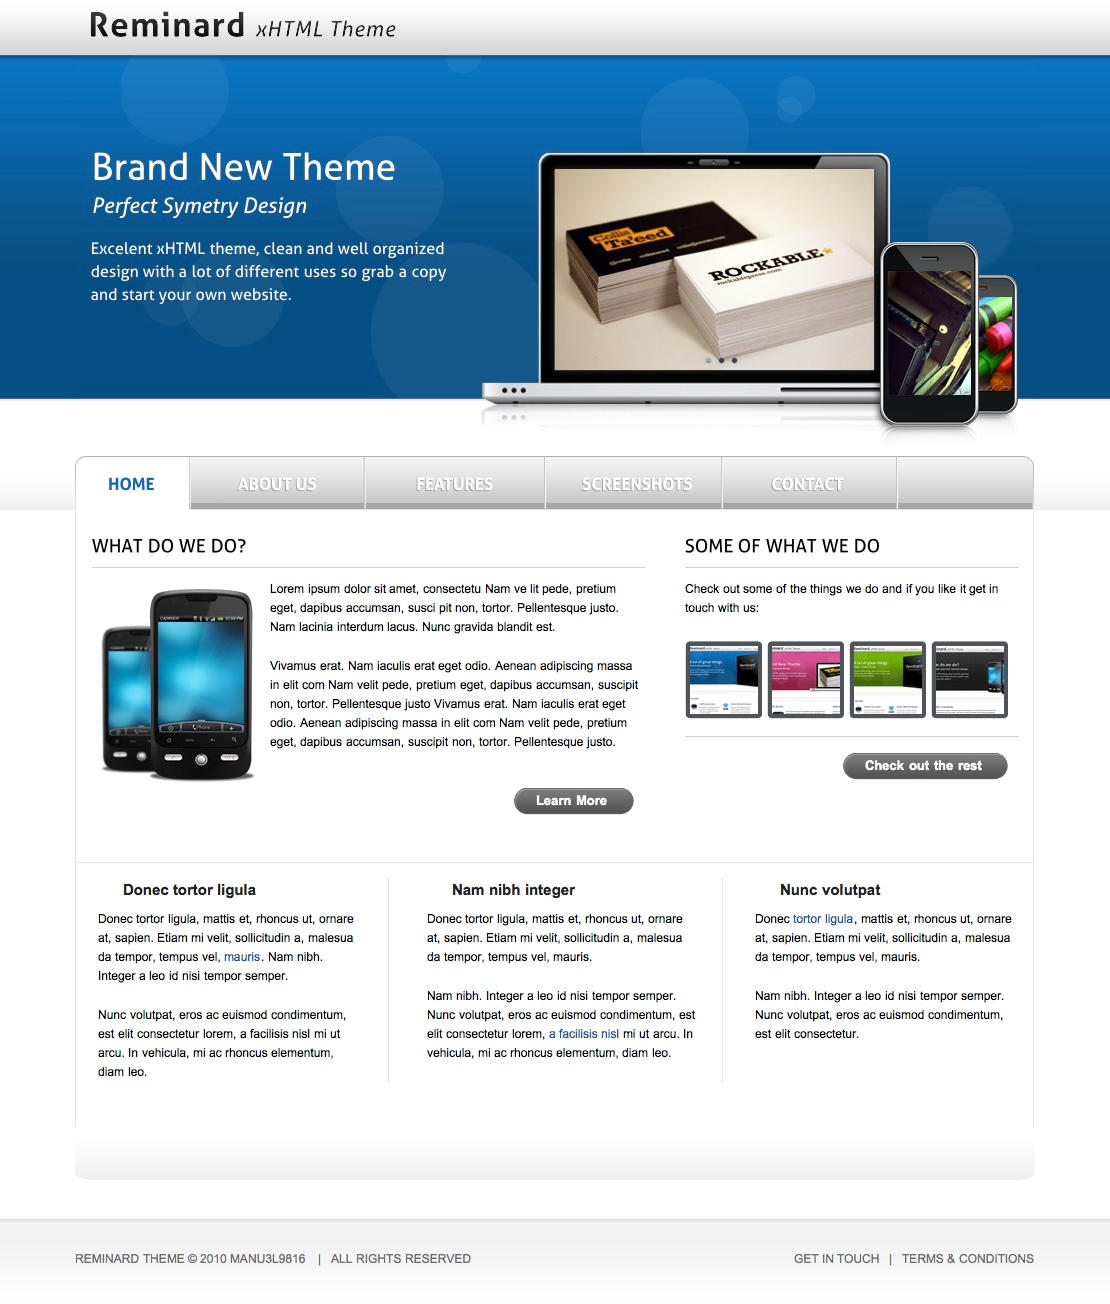 REMINARD Free psd web template by manu3l9816